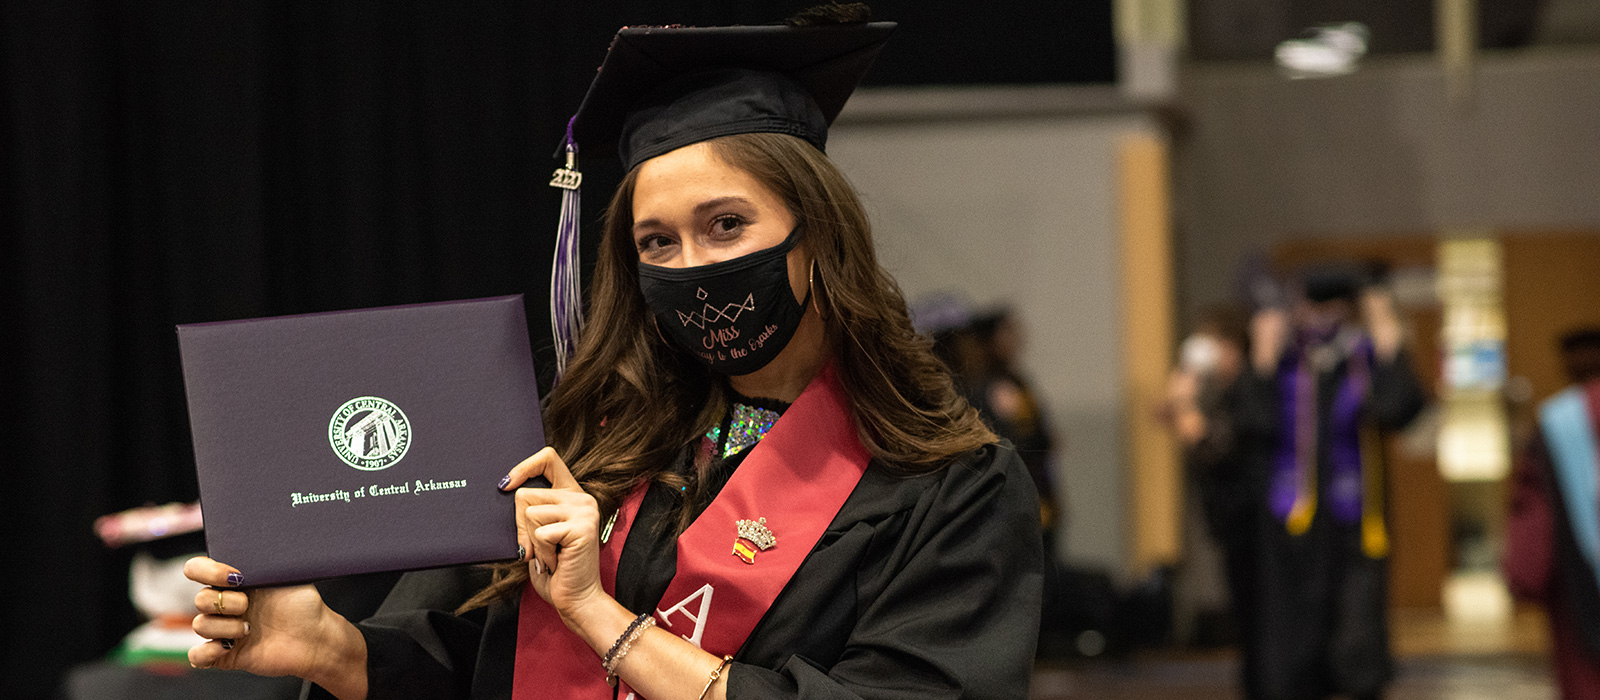 Female student at commencement